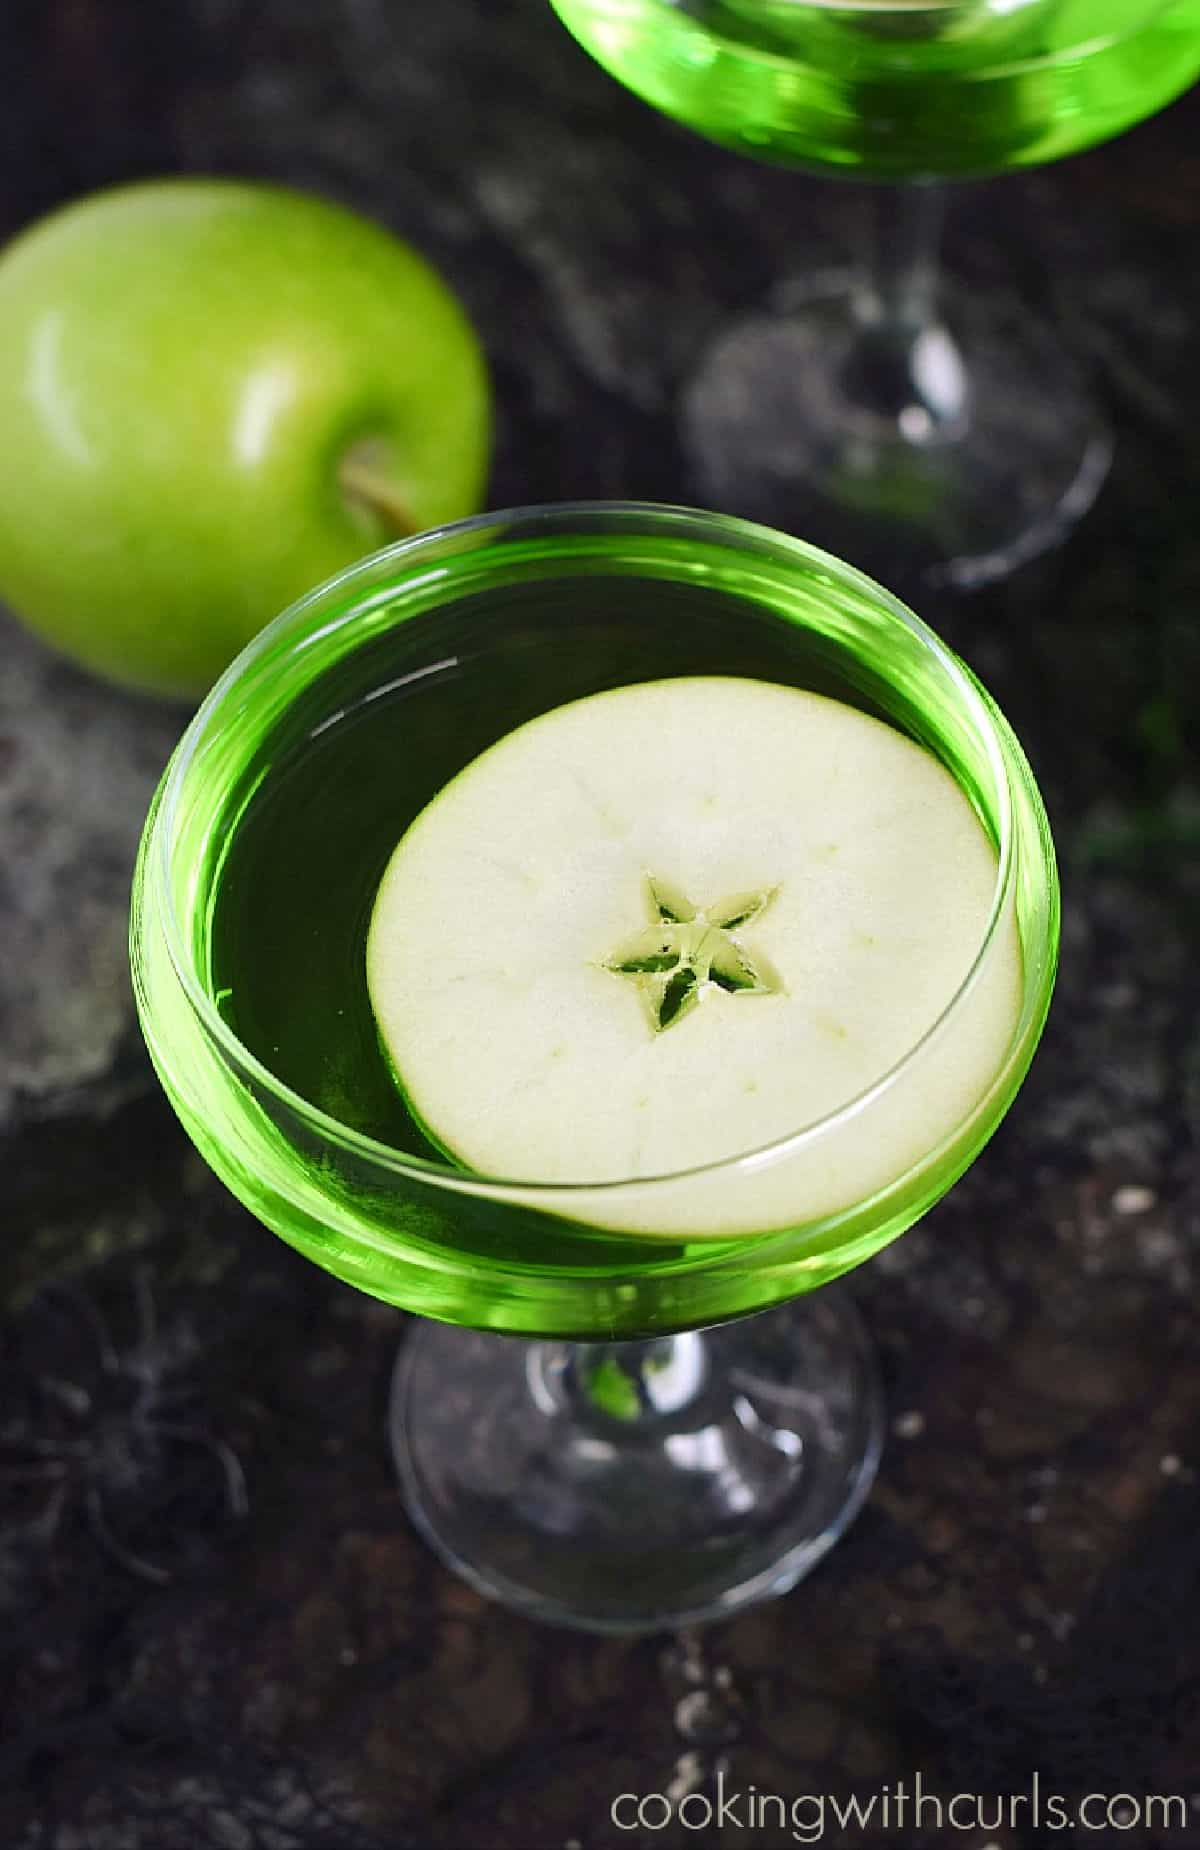 Looking down on a green cocktail with a floating apple slice with a second drink in the background with a green apple.